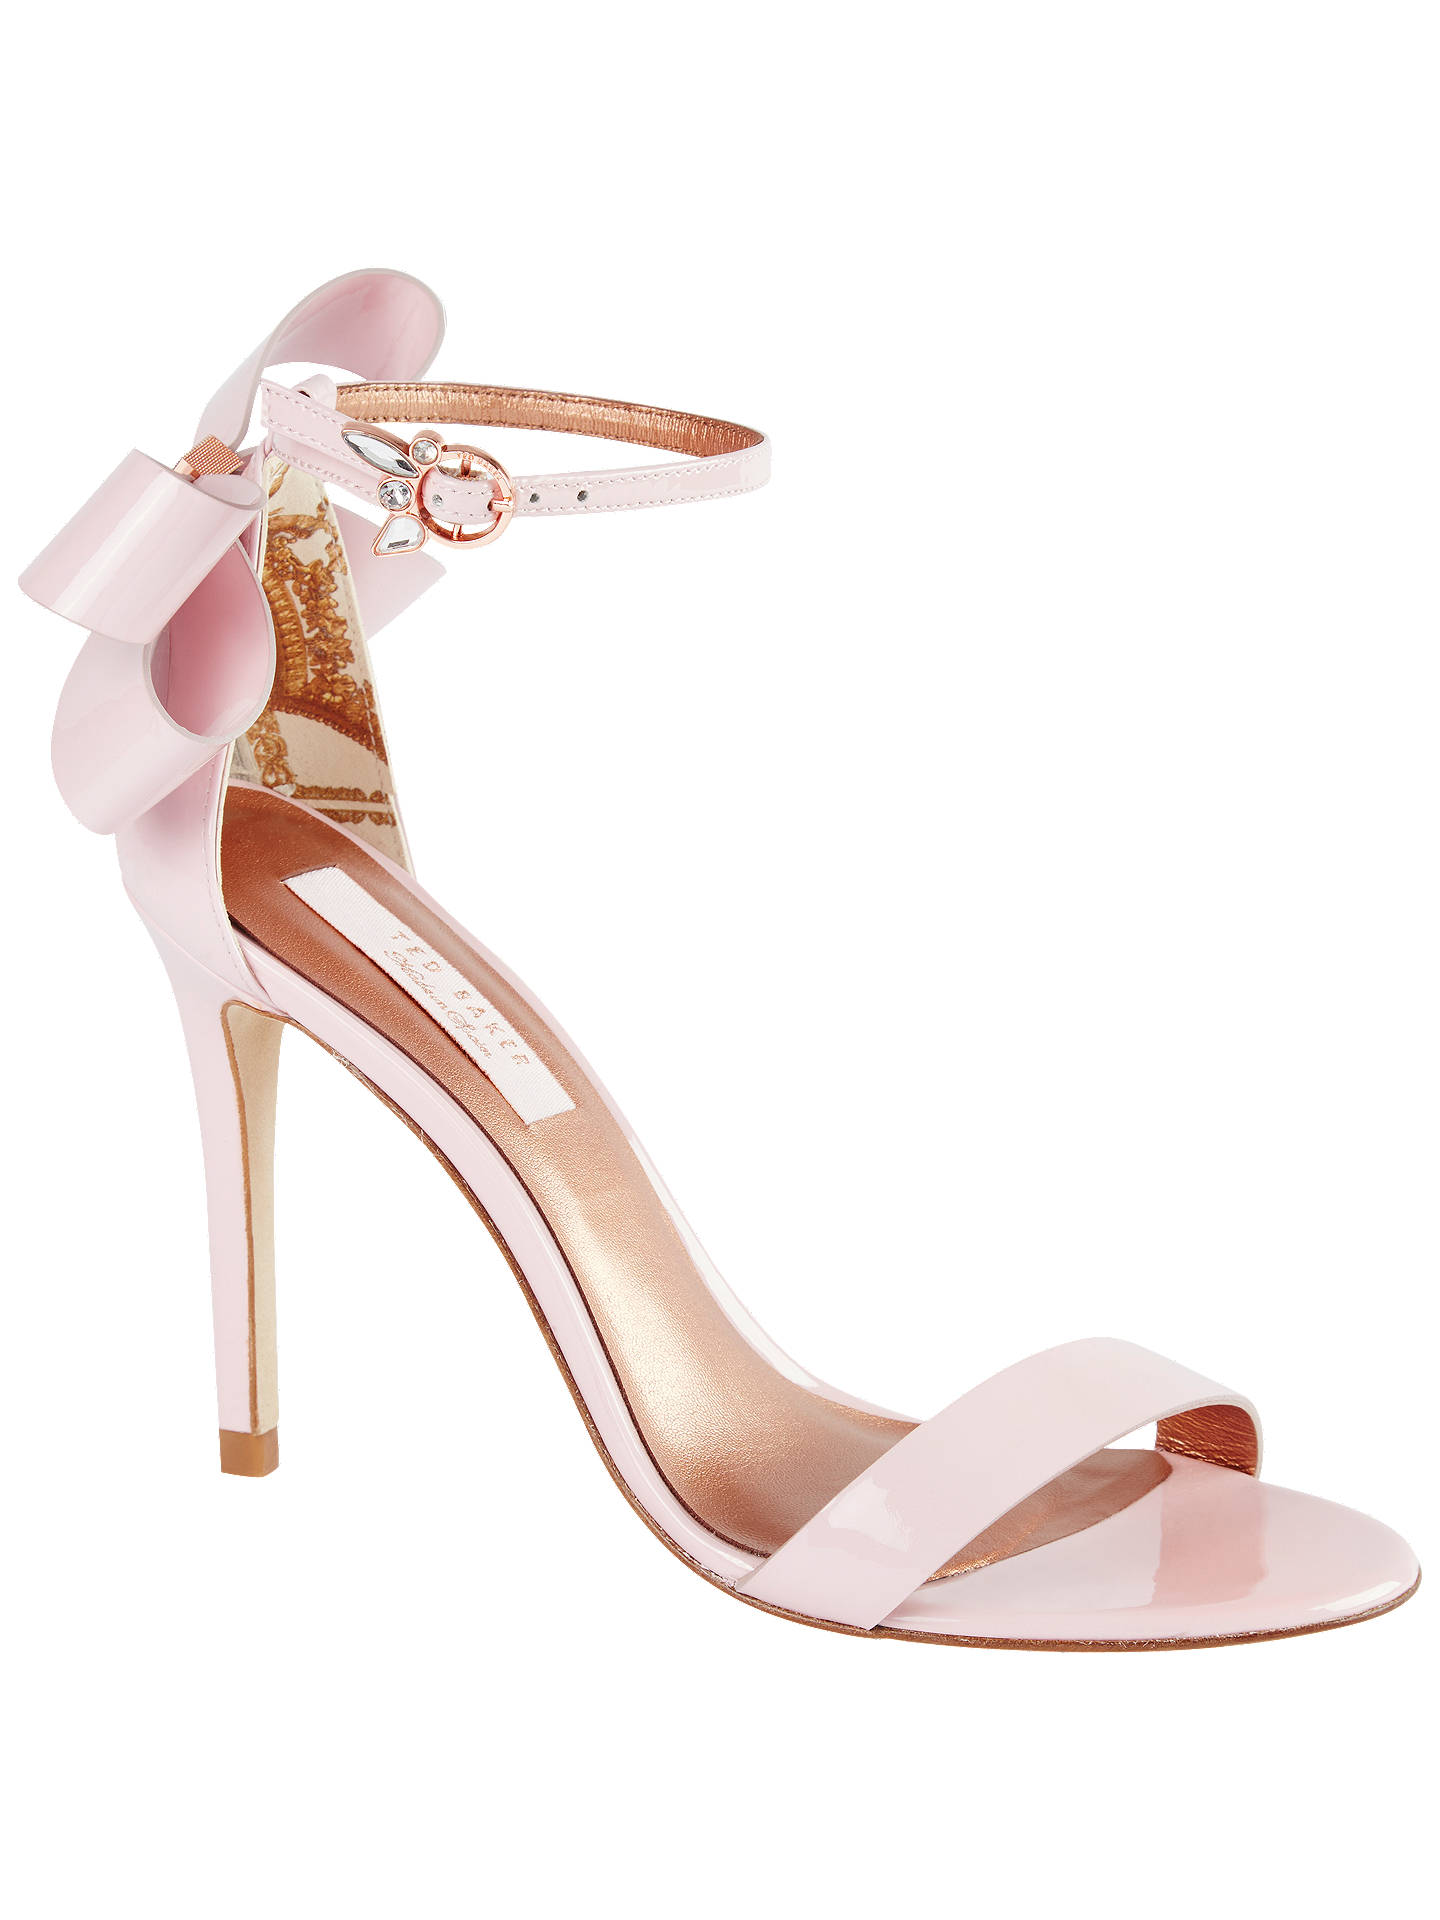 66410fa5681a1 Ted Baker Sandalo Stiletto Heel Sandals at John Lewis   Partners